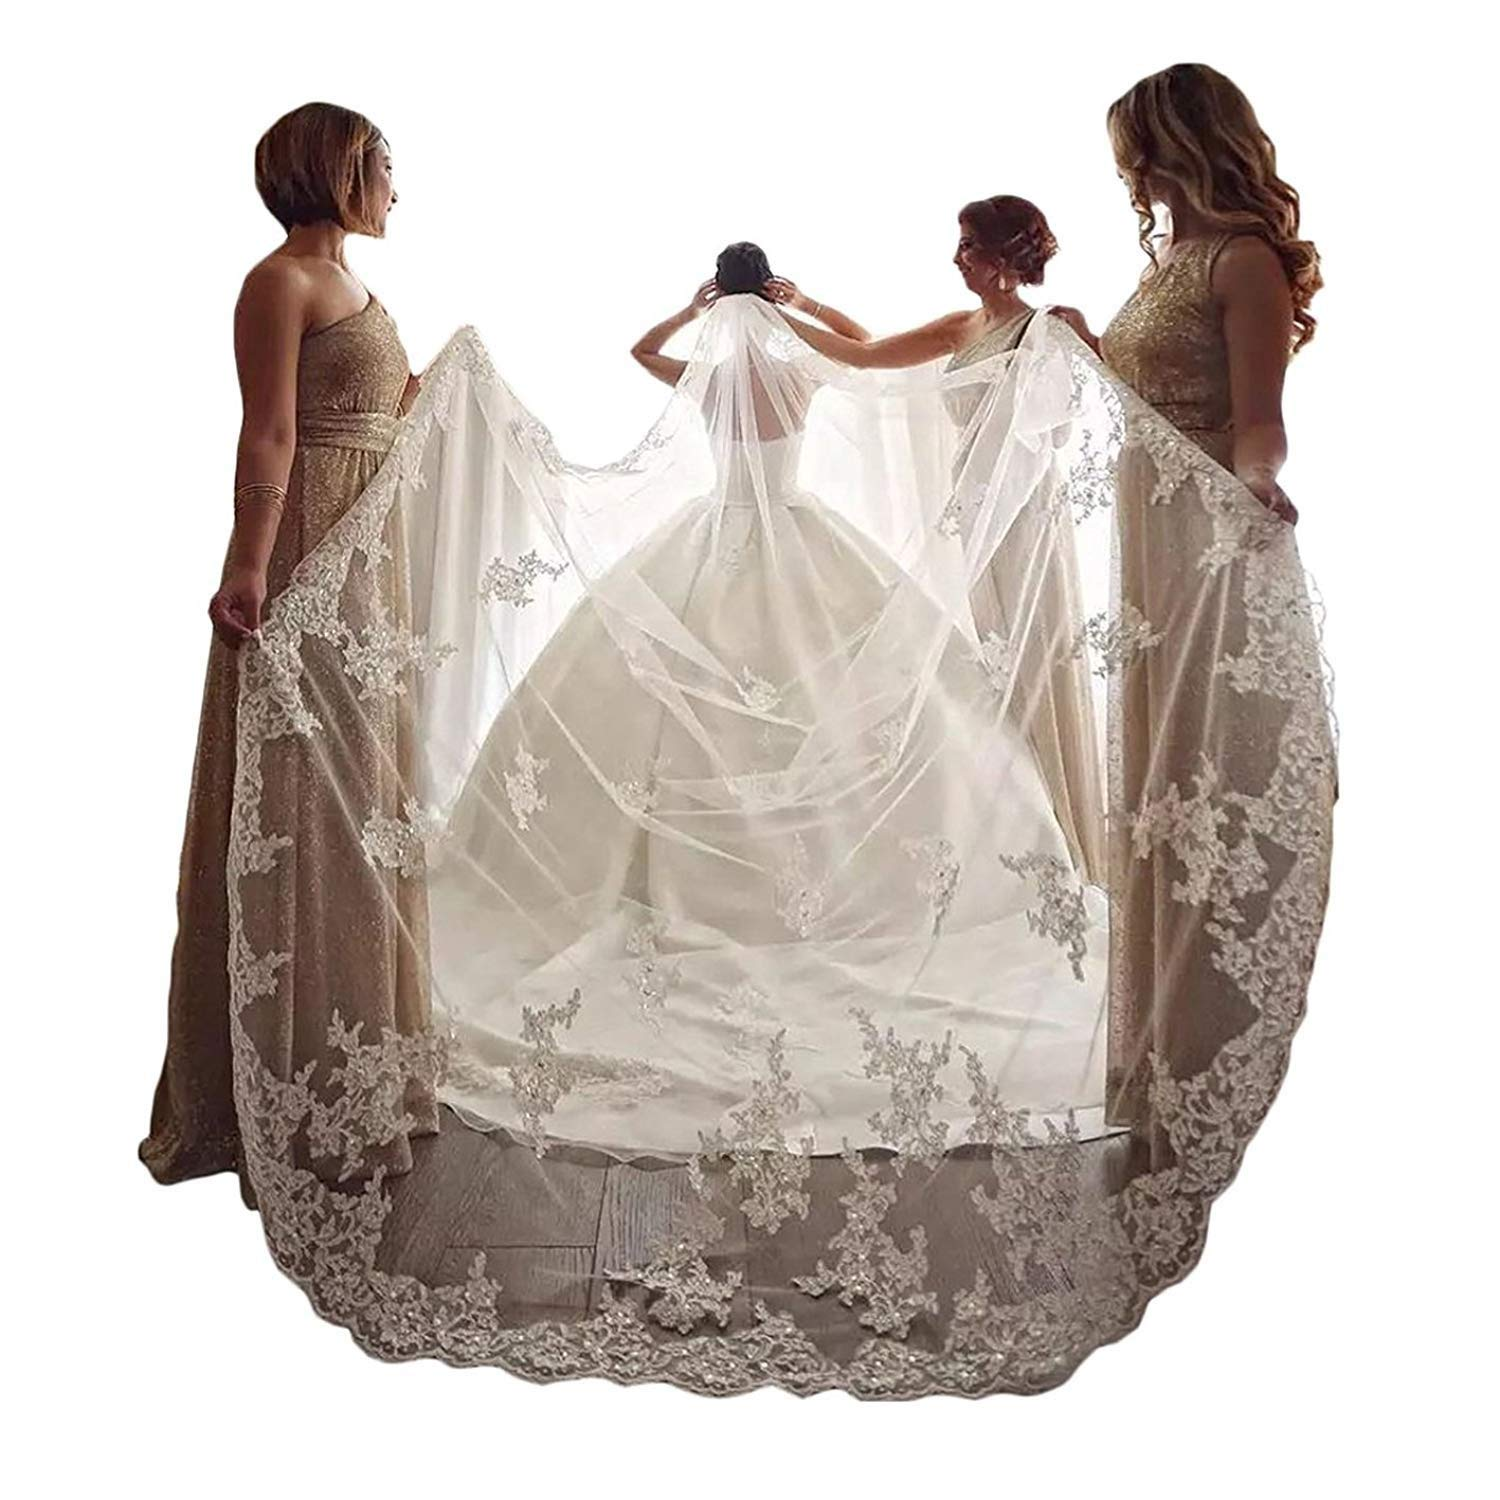 EllieHouse Women's Embroidery Lace Ivory Wedding Bridal Veil With Comb S60IV